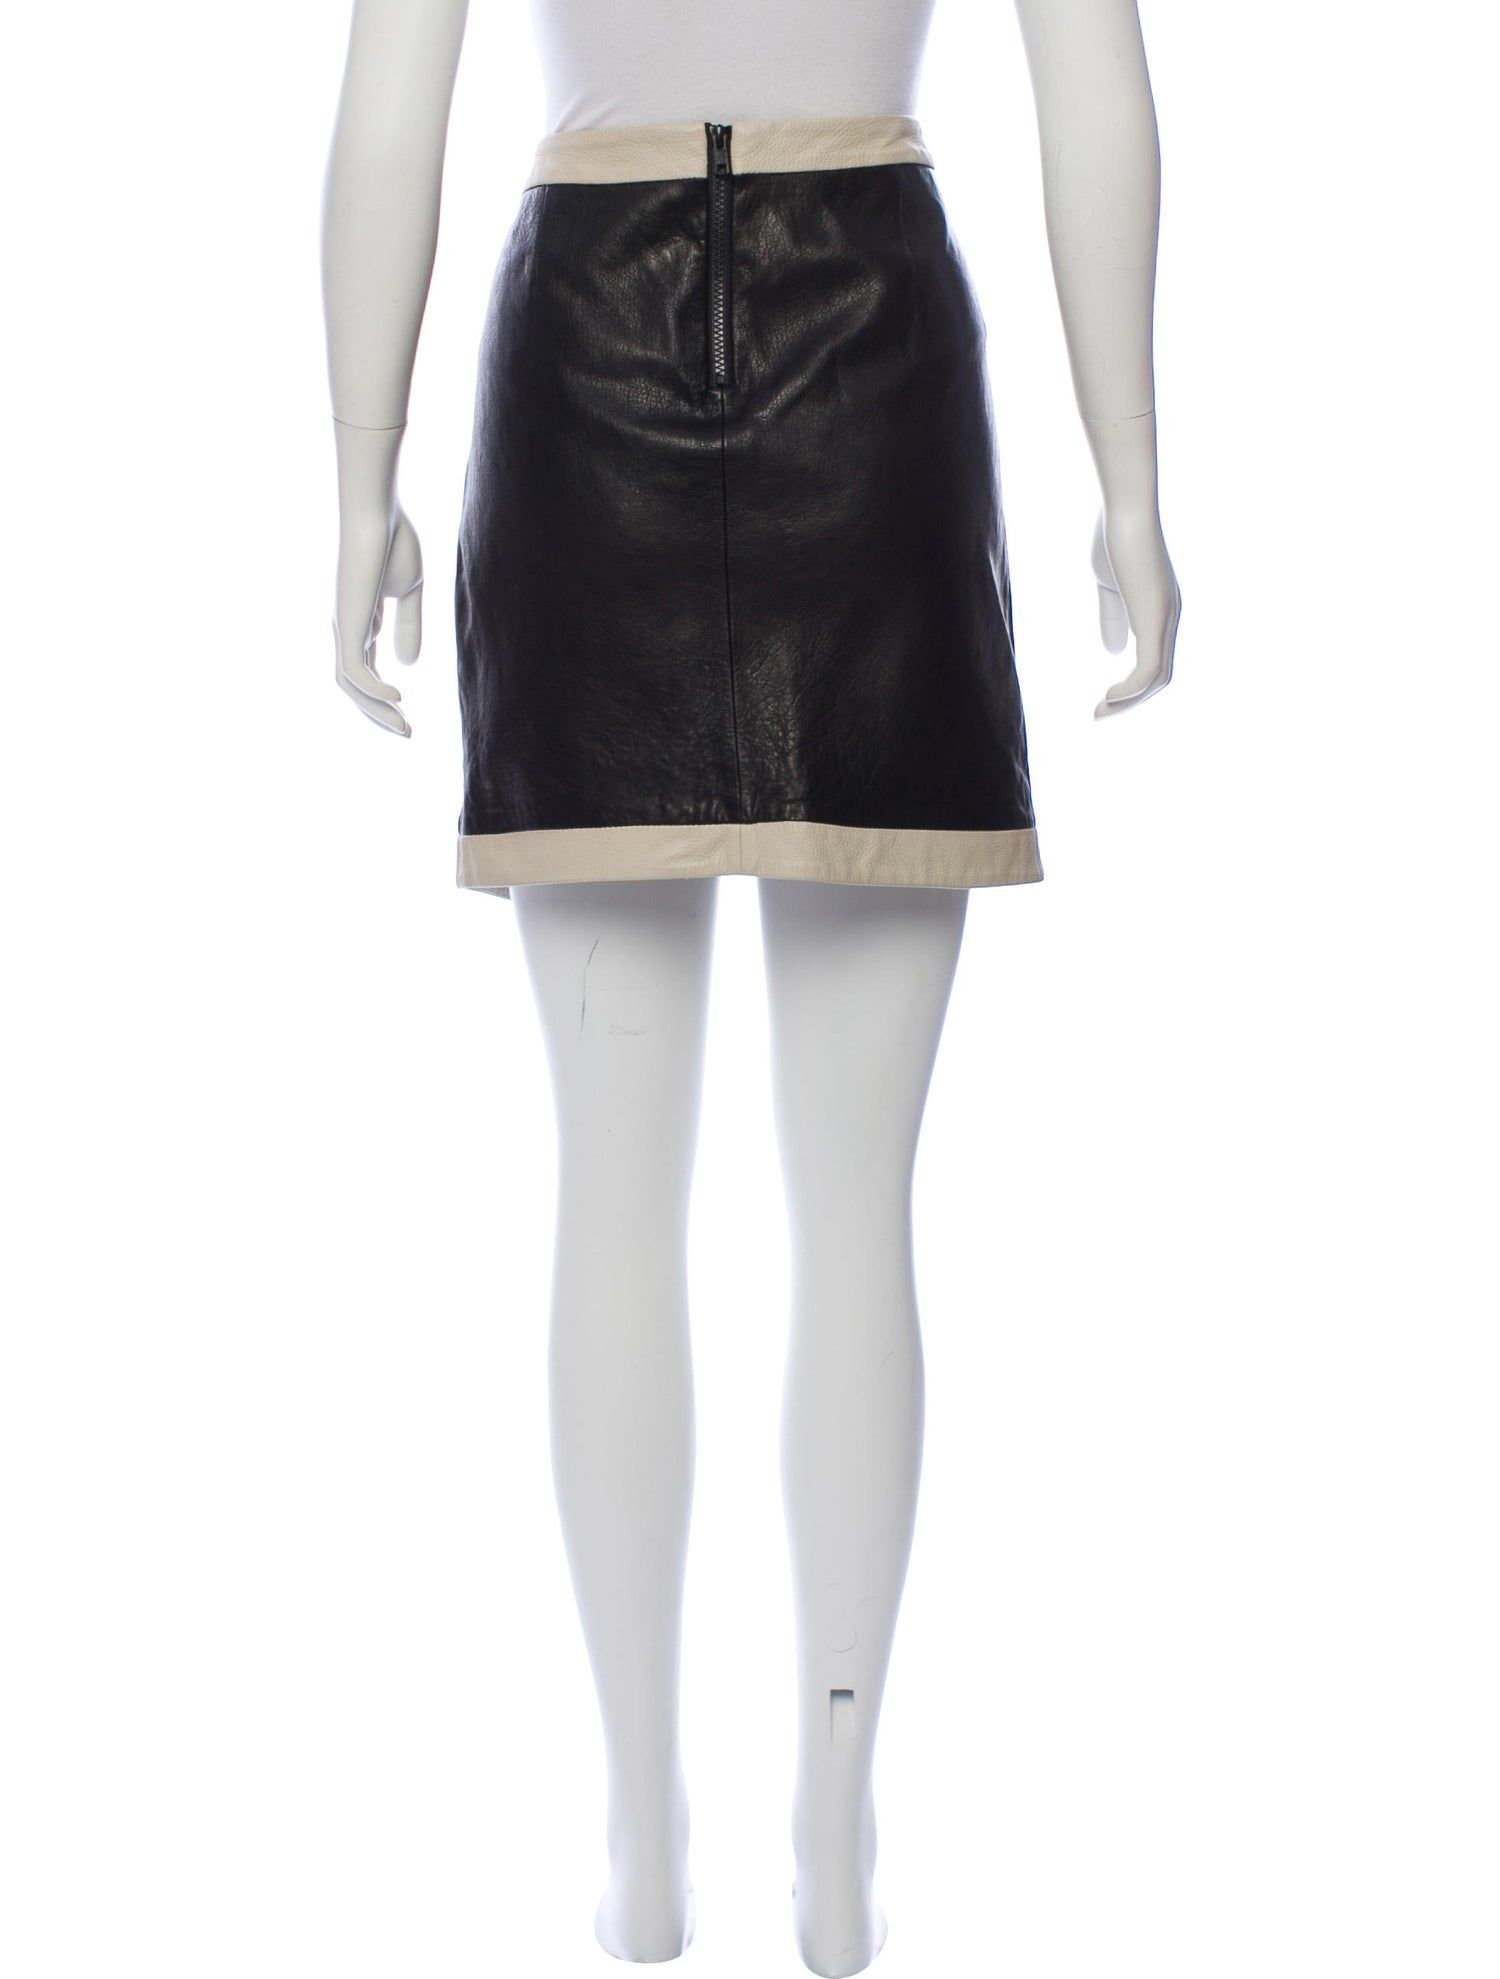 Helmut Lang Leather Mini Skirt Sponsored Lang Helmut Leather Mini Skirts Leather Mini Skirts Mens Fashion Casual Outfits